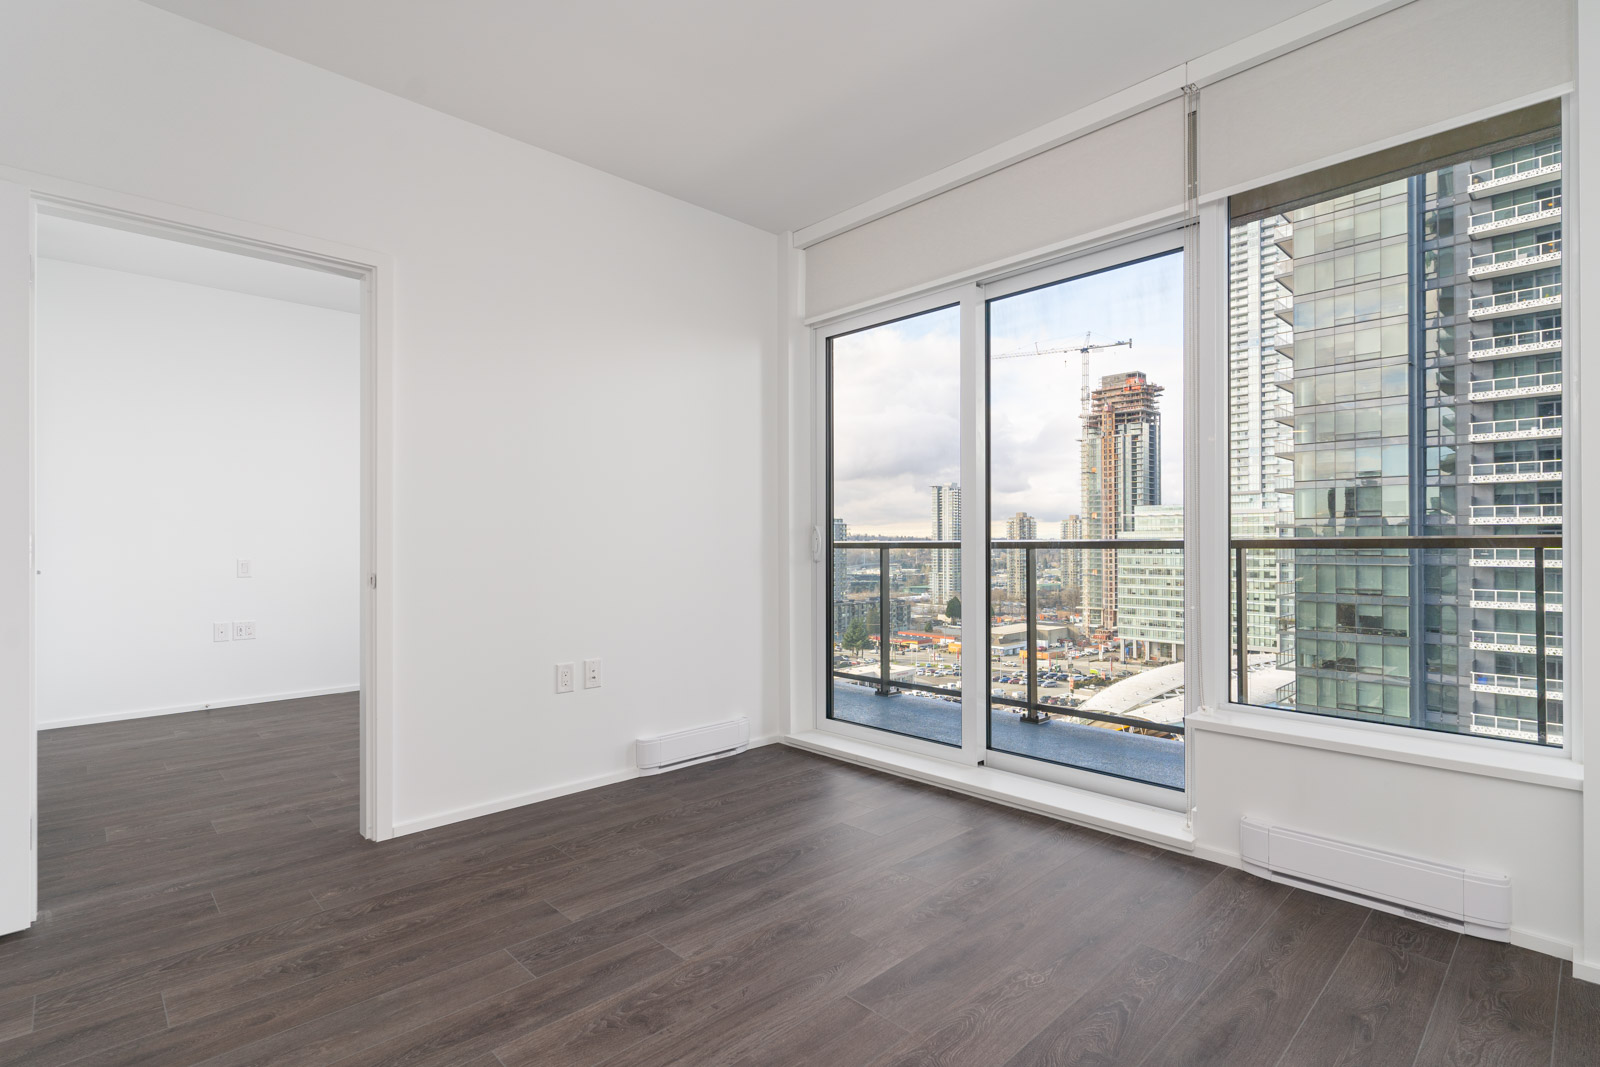 Spacious living room with plenty of sunlight overlooking the city of burnaby in metro vancouver